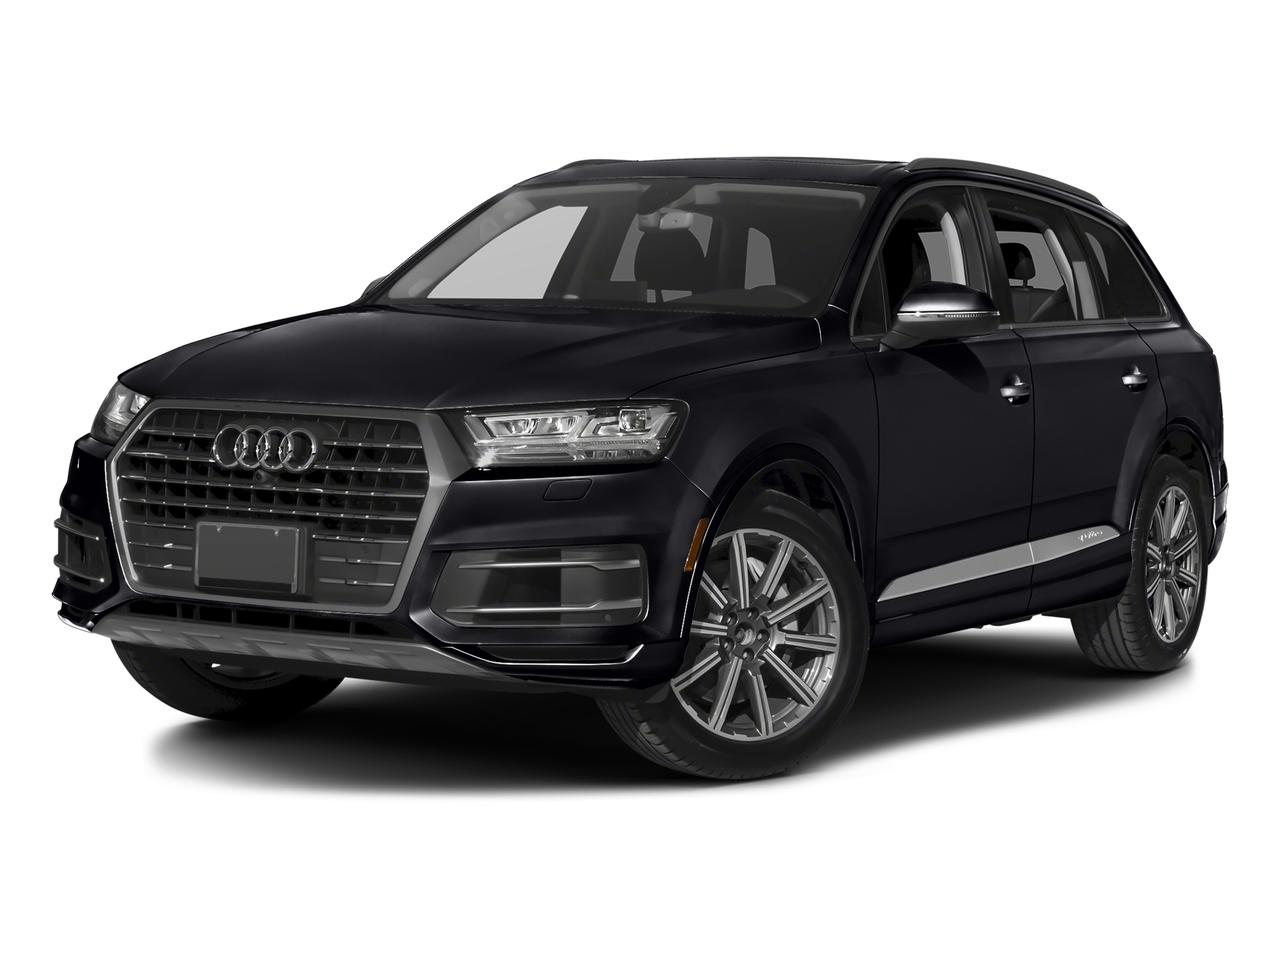 2017 Audi Q7 Vehicle Photo in Poughkeepsie, NY 12601